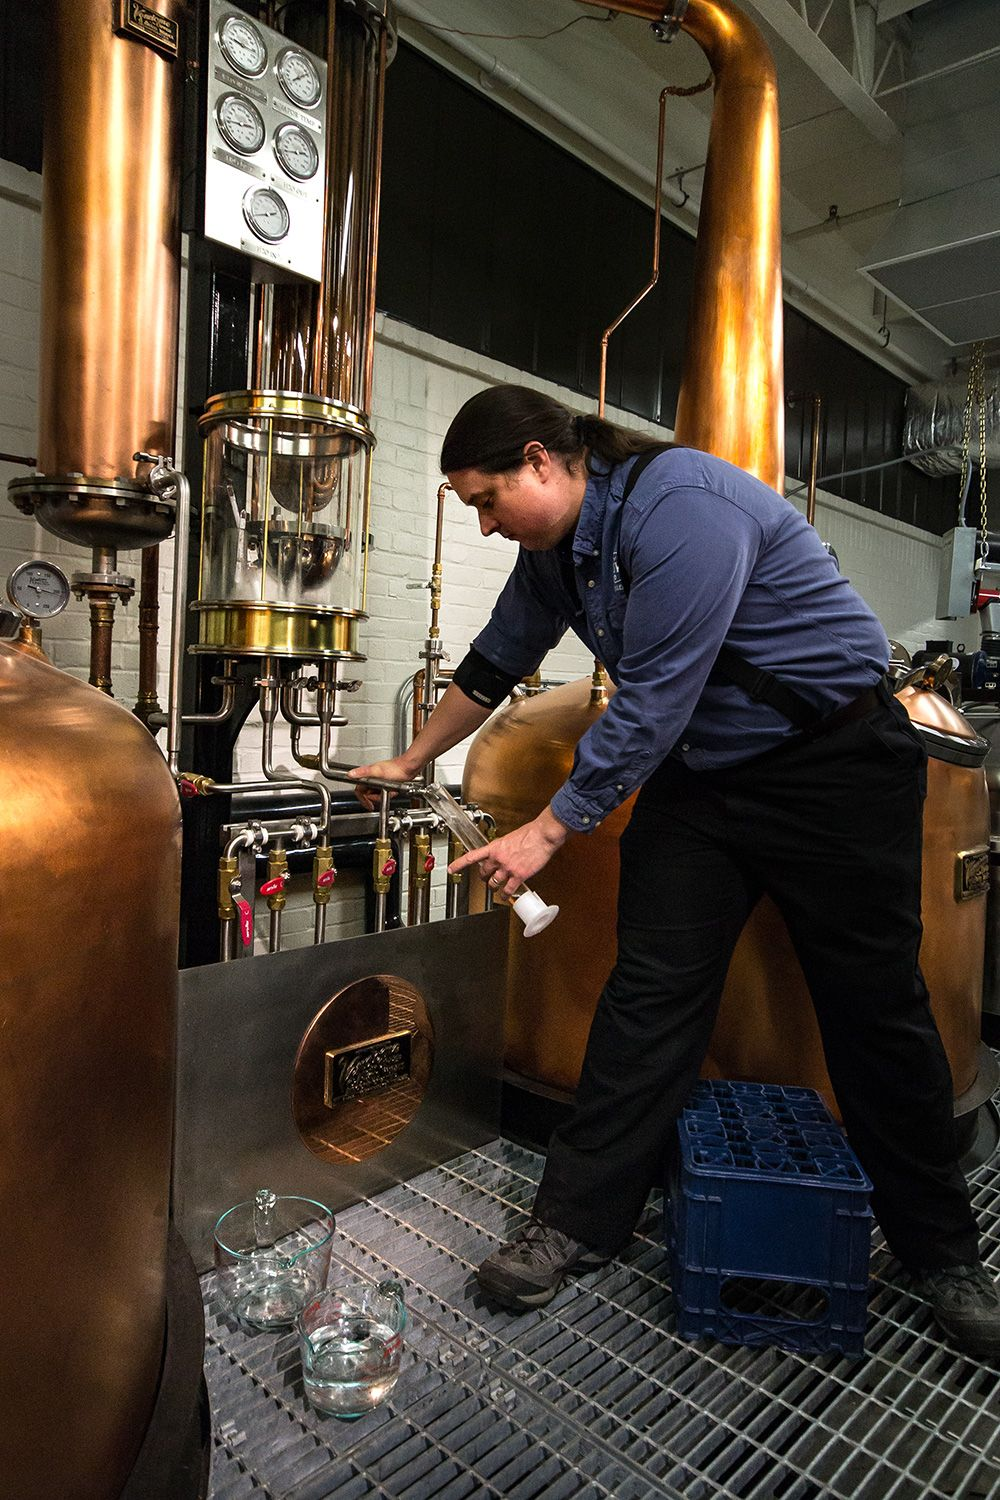 Employee Justin takes a sample during the distilling process.